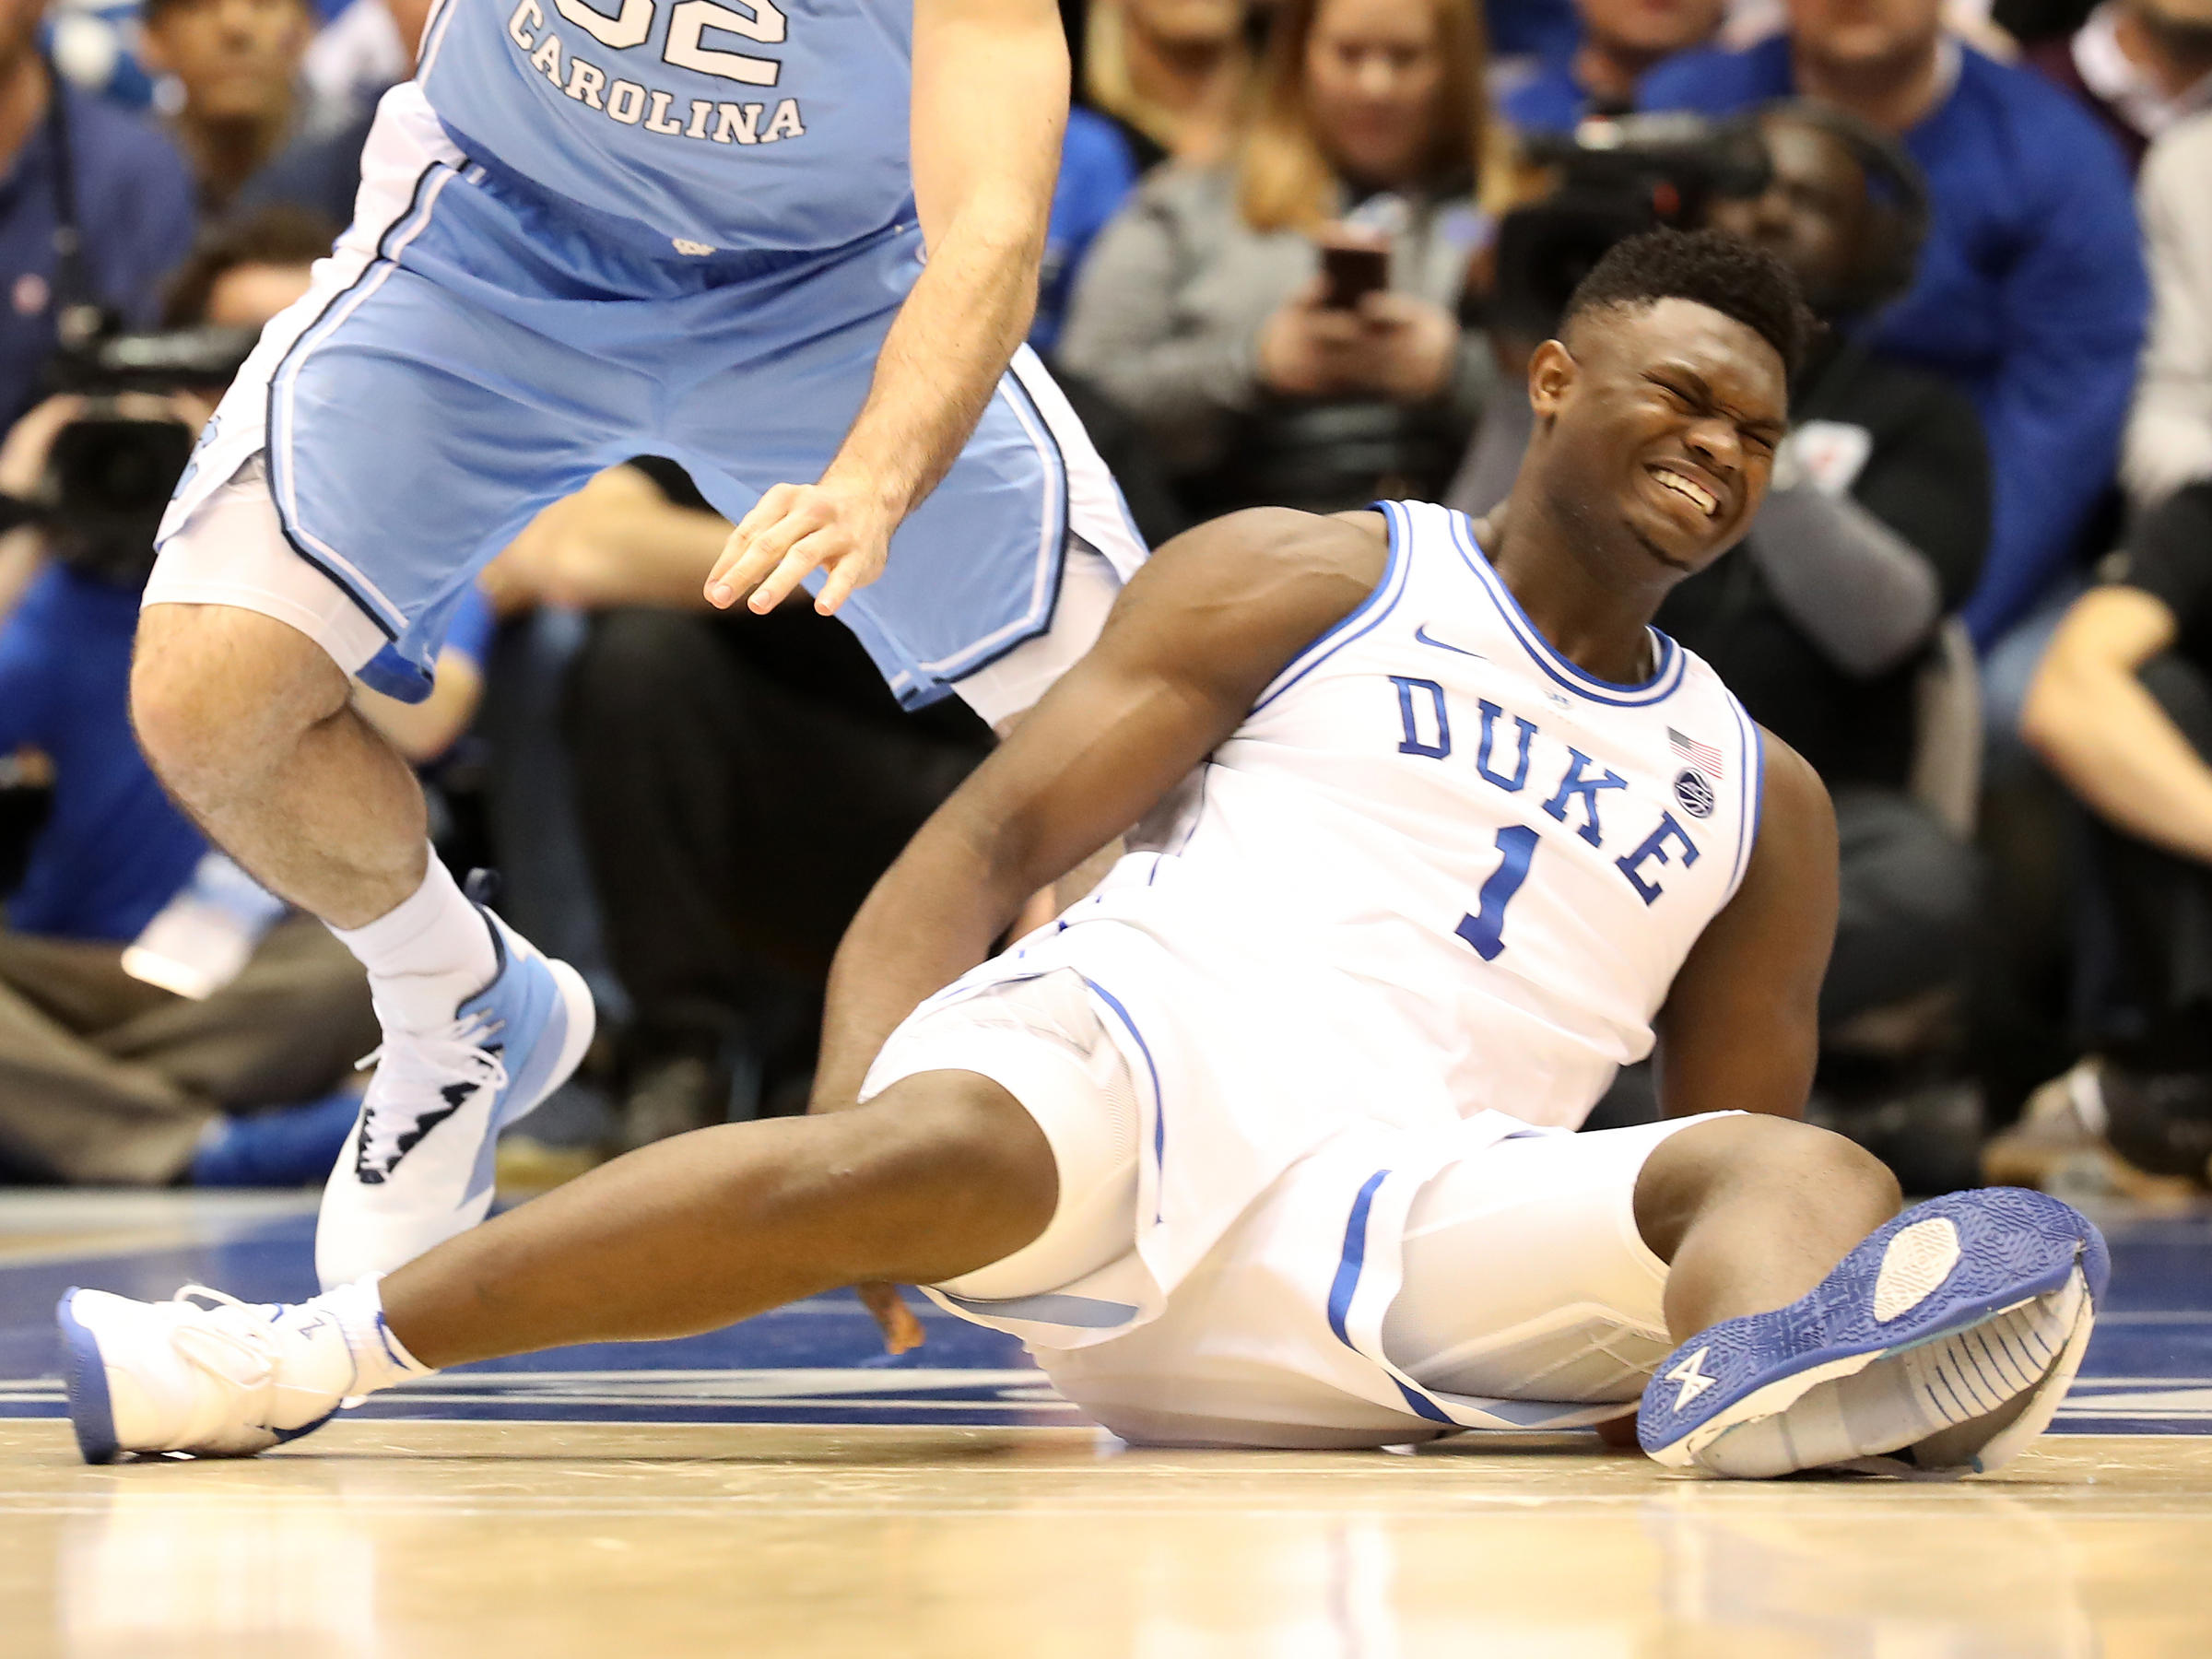 newest fc880 bfca2 Dukes Zion Williamson reacts after falling as his shoe breaks in the game  against the North Carolina Tar Heels Wednesday in Durham, N.C.